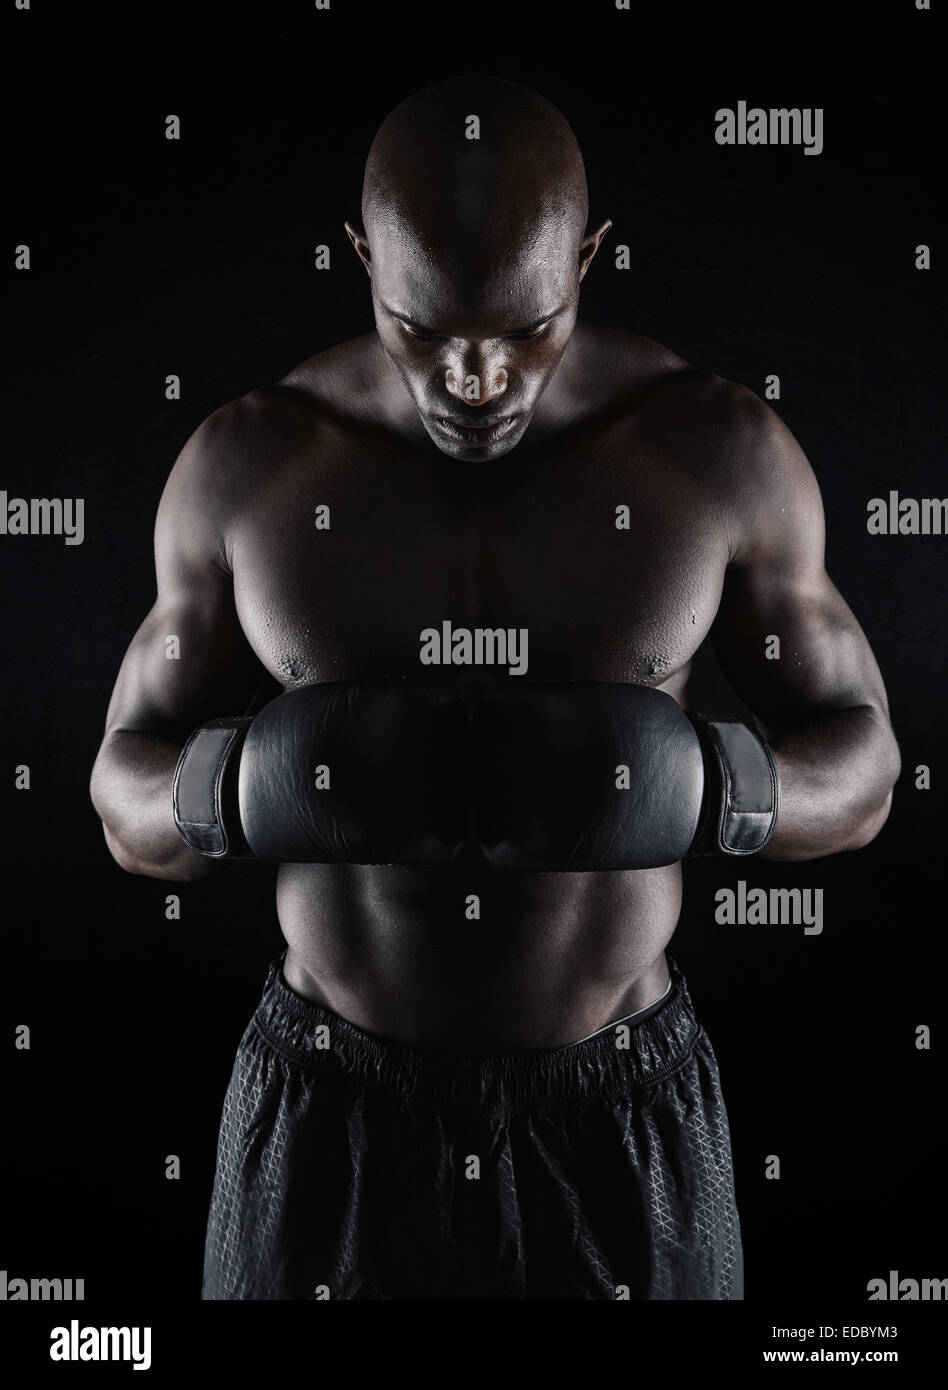 Portrait of fit young man wearing boxing gloves looking down on black background. Boxer preparing for fight. - Stock Image